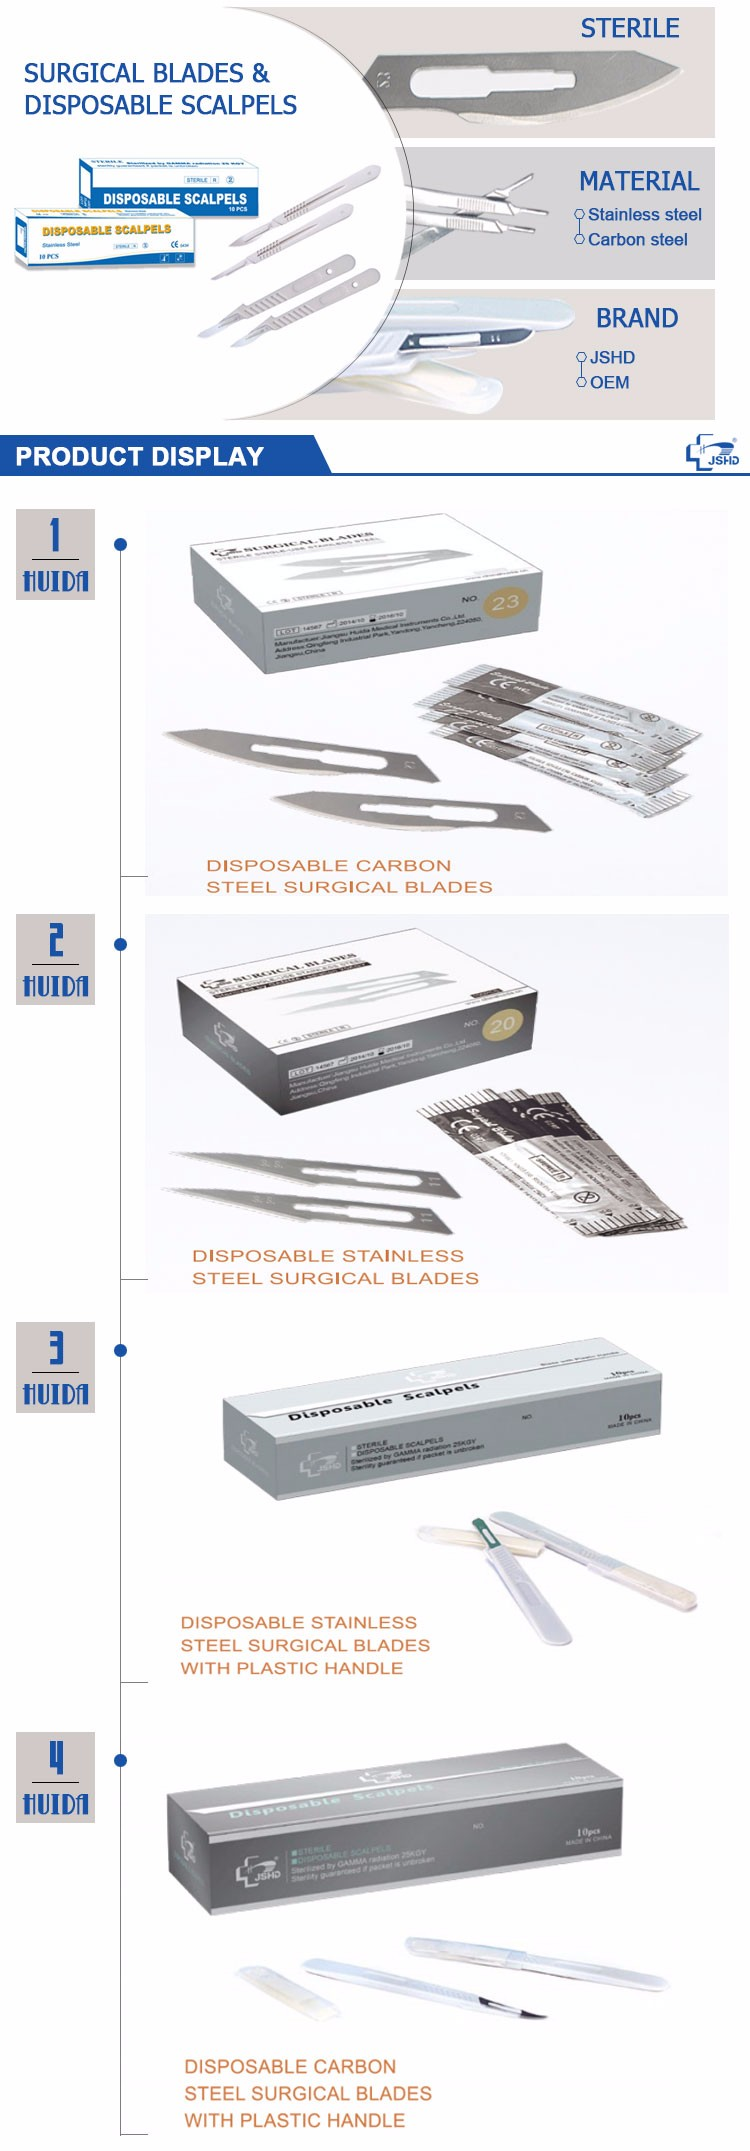 sterile surgical scalpel blade with scalpel handle